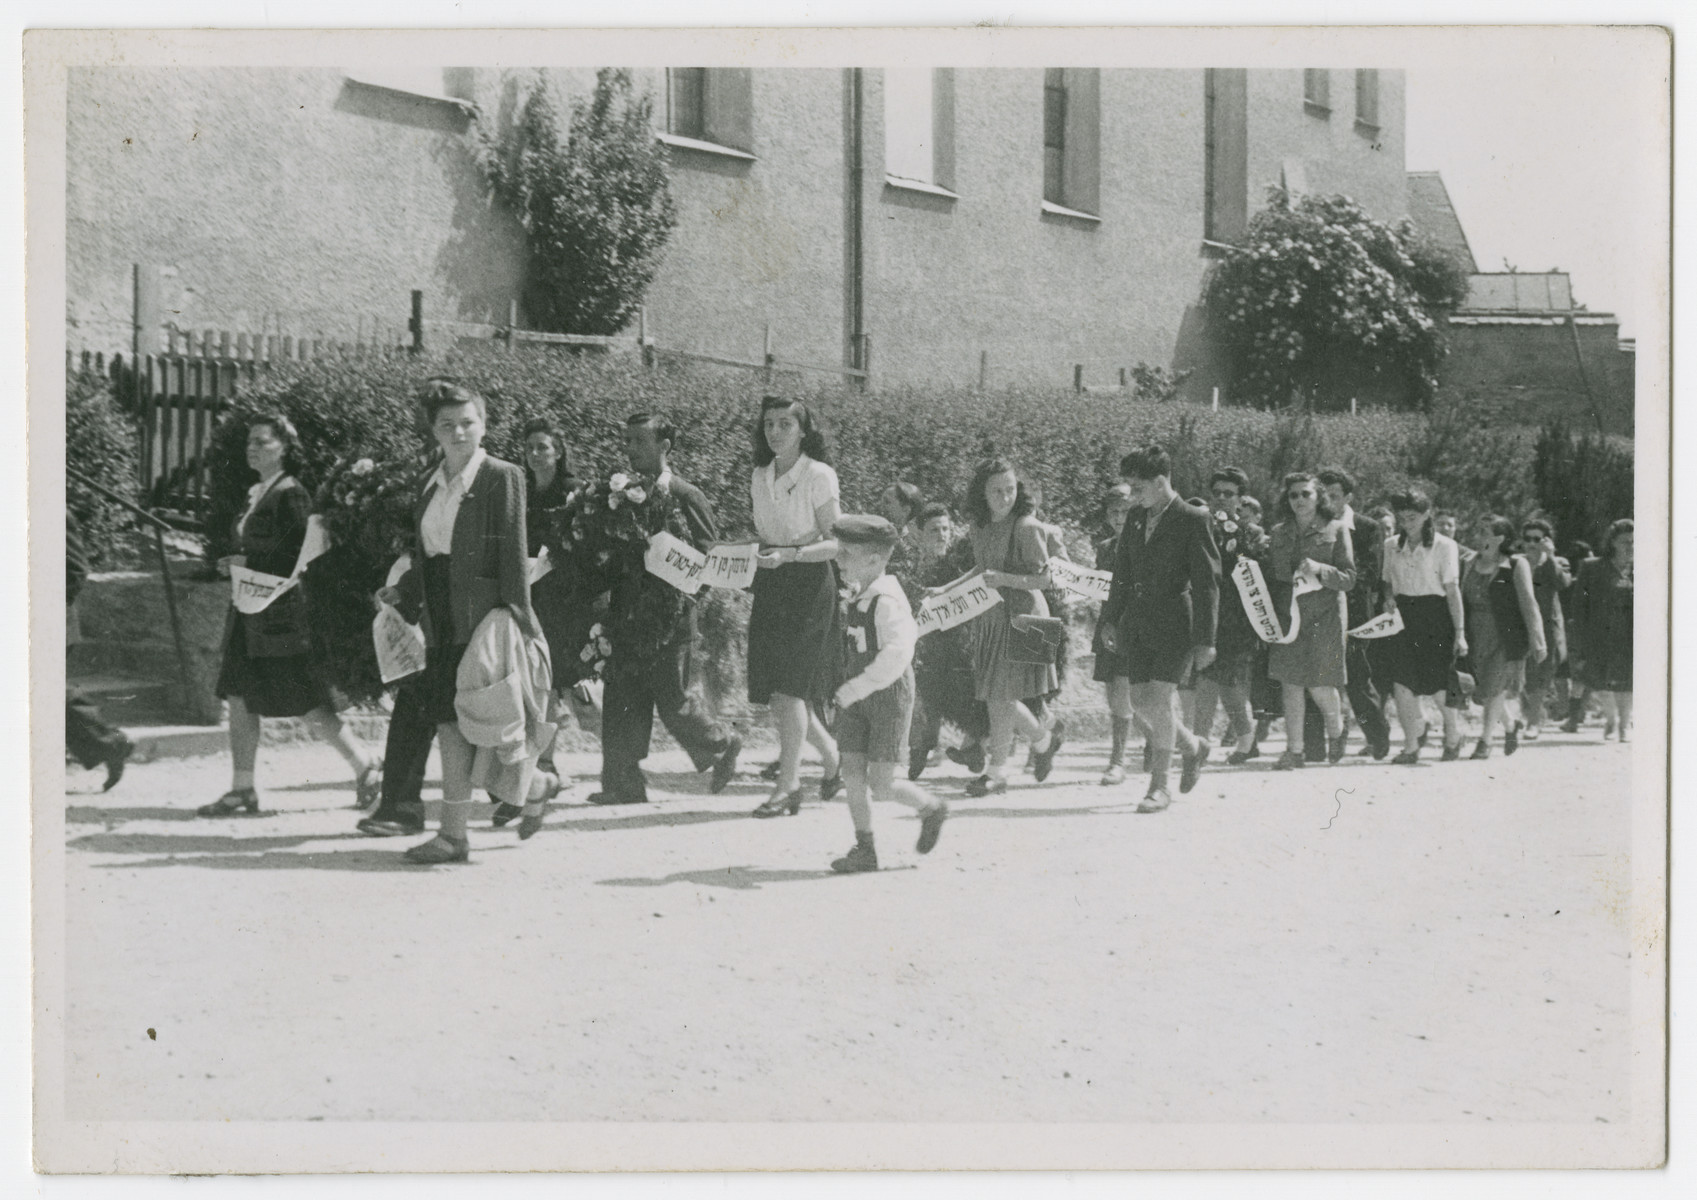 Jews from the Eggenfelden displaced persons camp participate in a commemorative march for the victims of a Nazi death march.